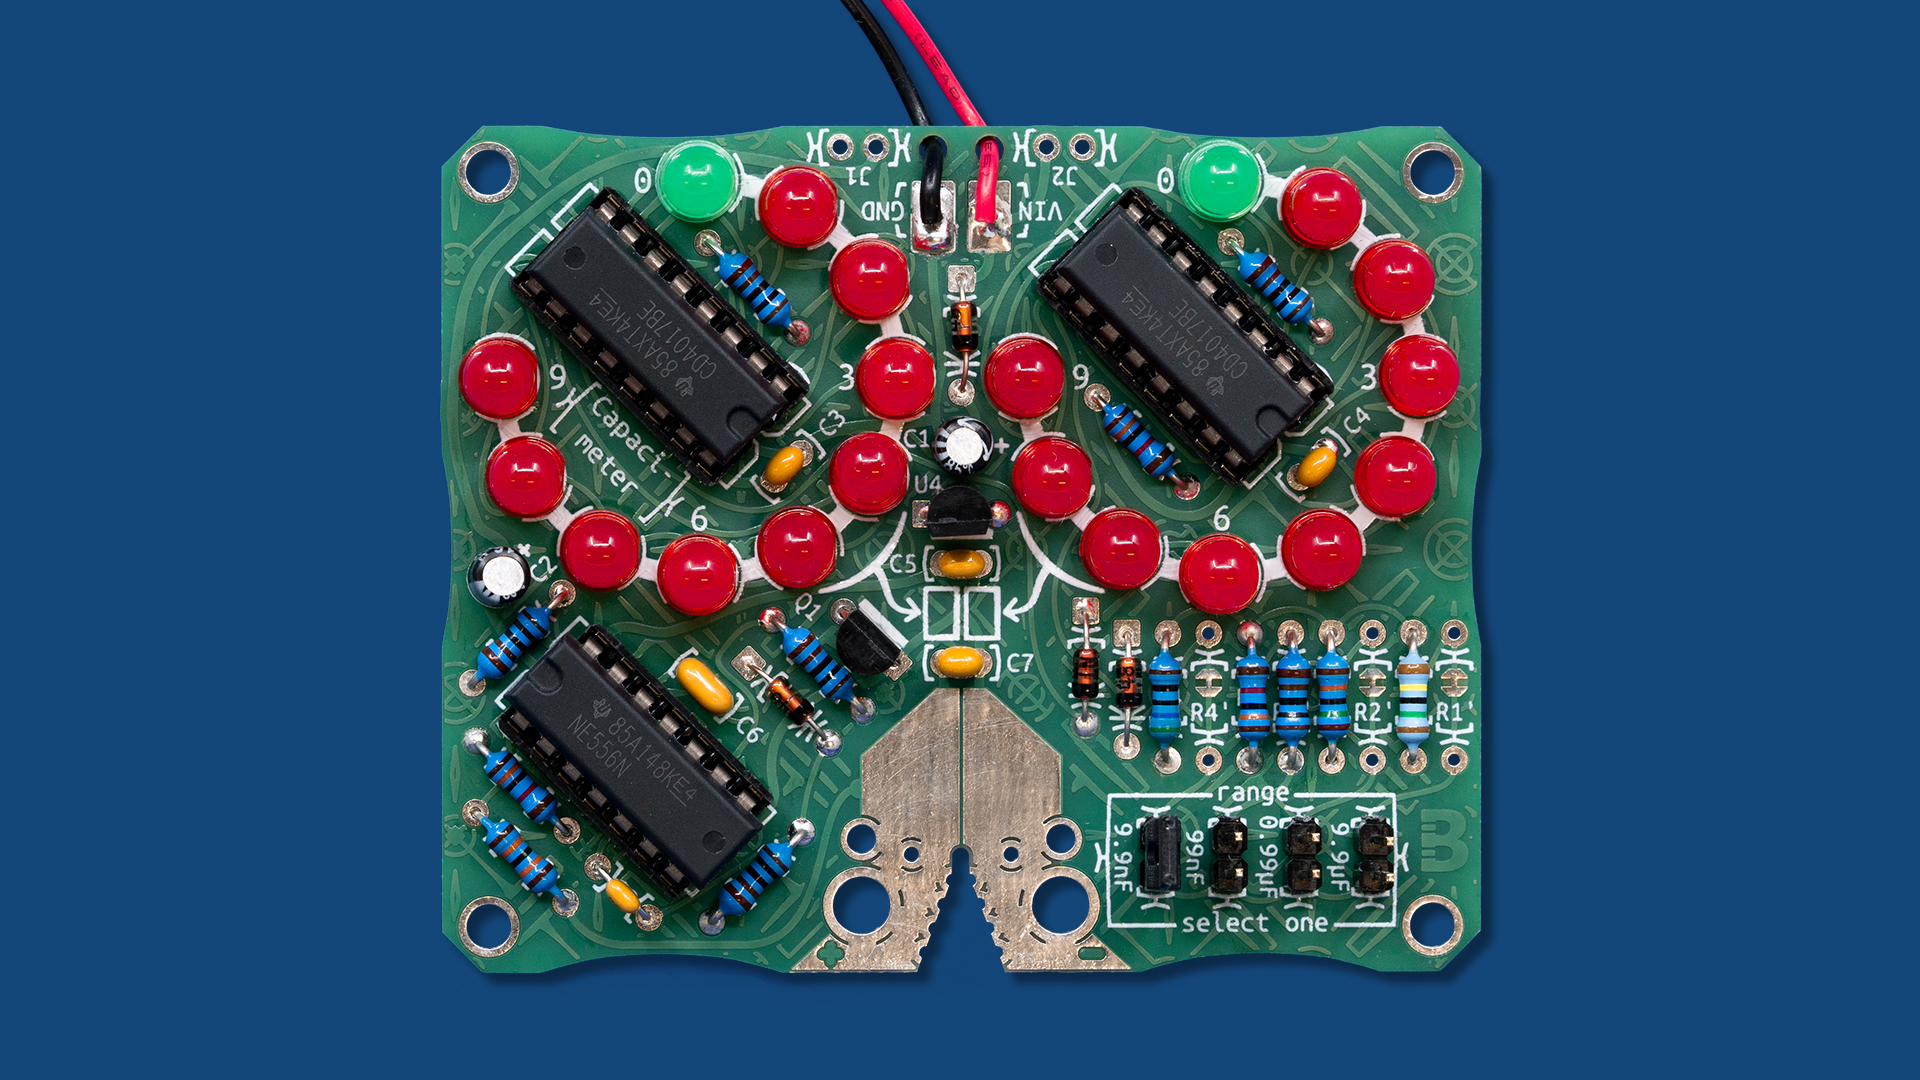 Boldport Club Electronic Kits Subscription Project On Circuit Design See Current And Previous Projects At Our Clubs Shop As Well The Community Content Repository Here Are Last Five